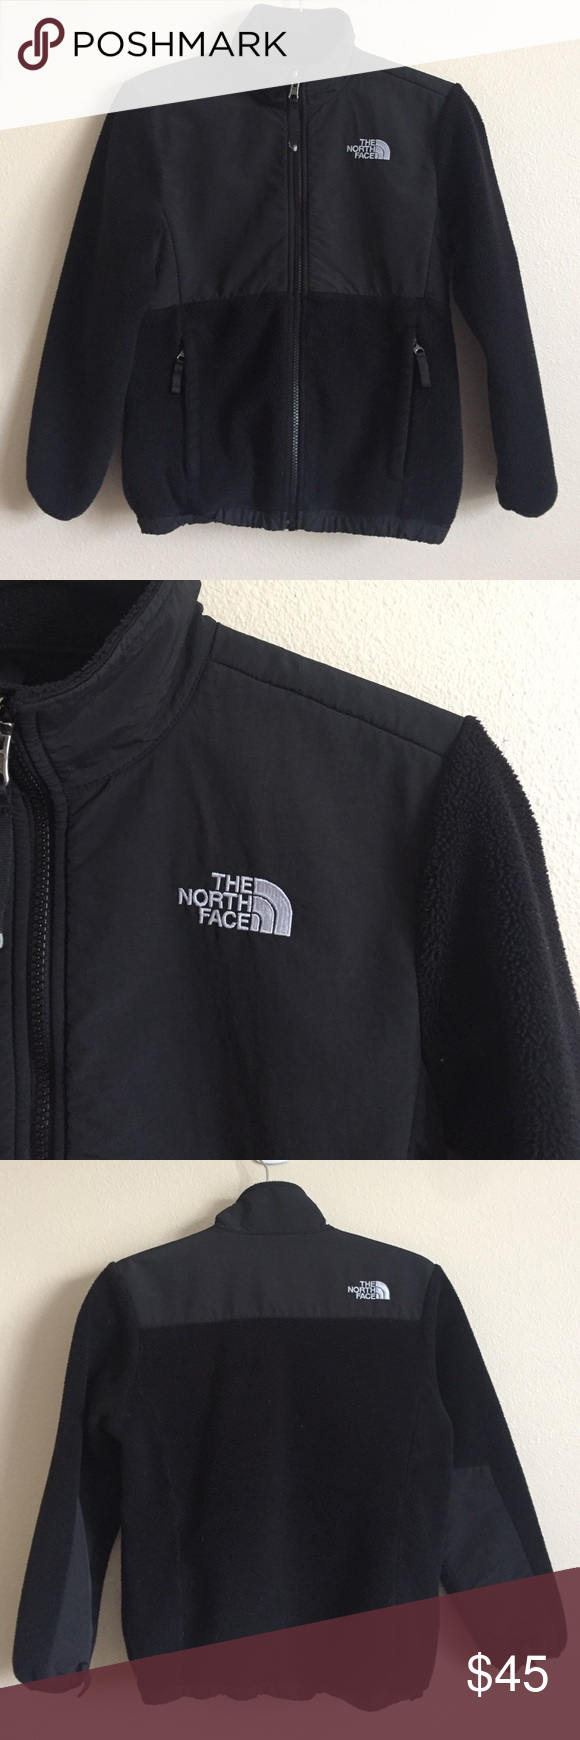 North Face Denali Fleece Coat Black North Face denali fleece coat. Has sleeve snaps so it can be easily attached to an outer shell if needed. Thick and warm. In excellent condition. North Face Jackets & Coats